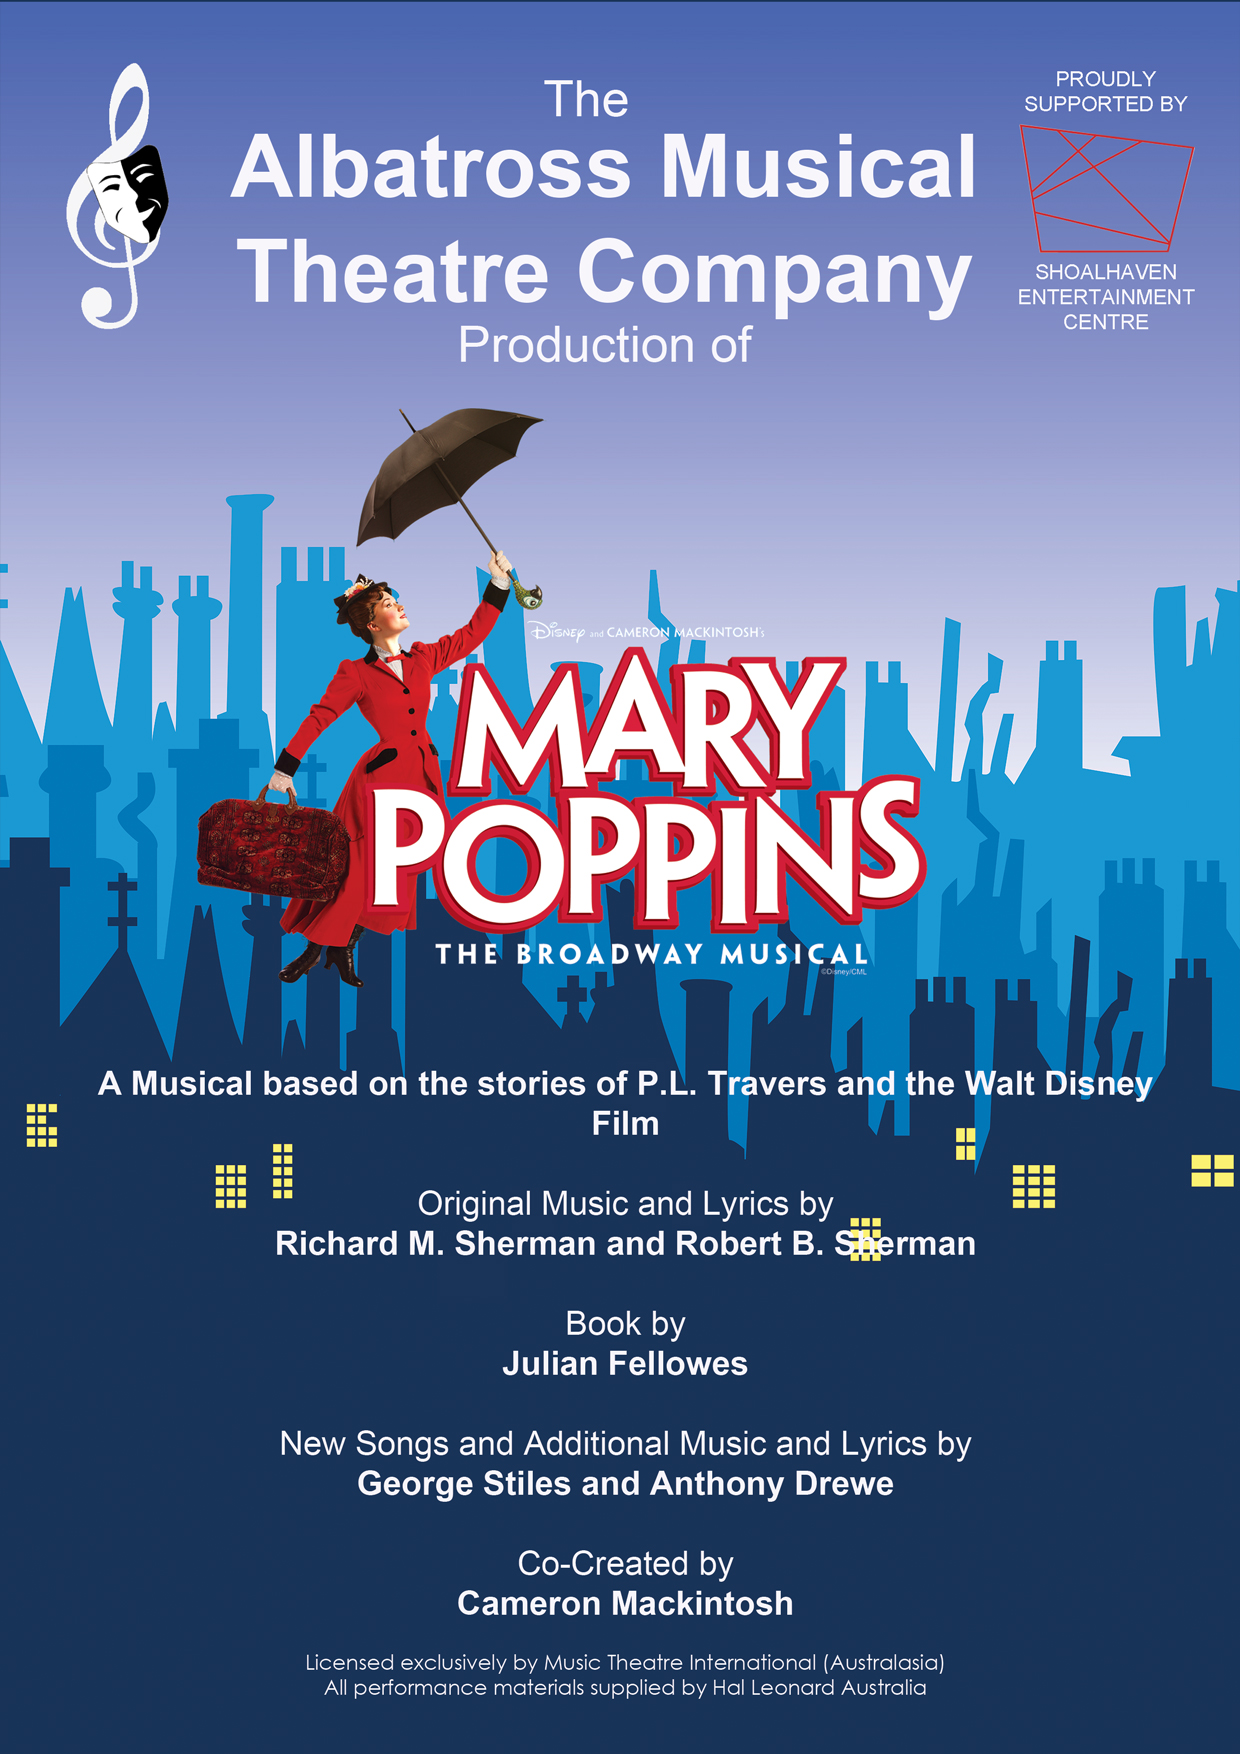 Mary Poppins Albatross Musical Theatre Company